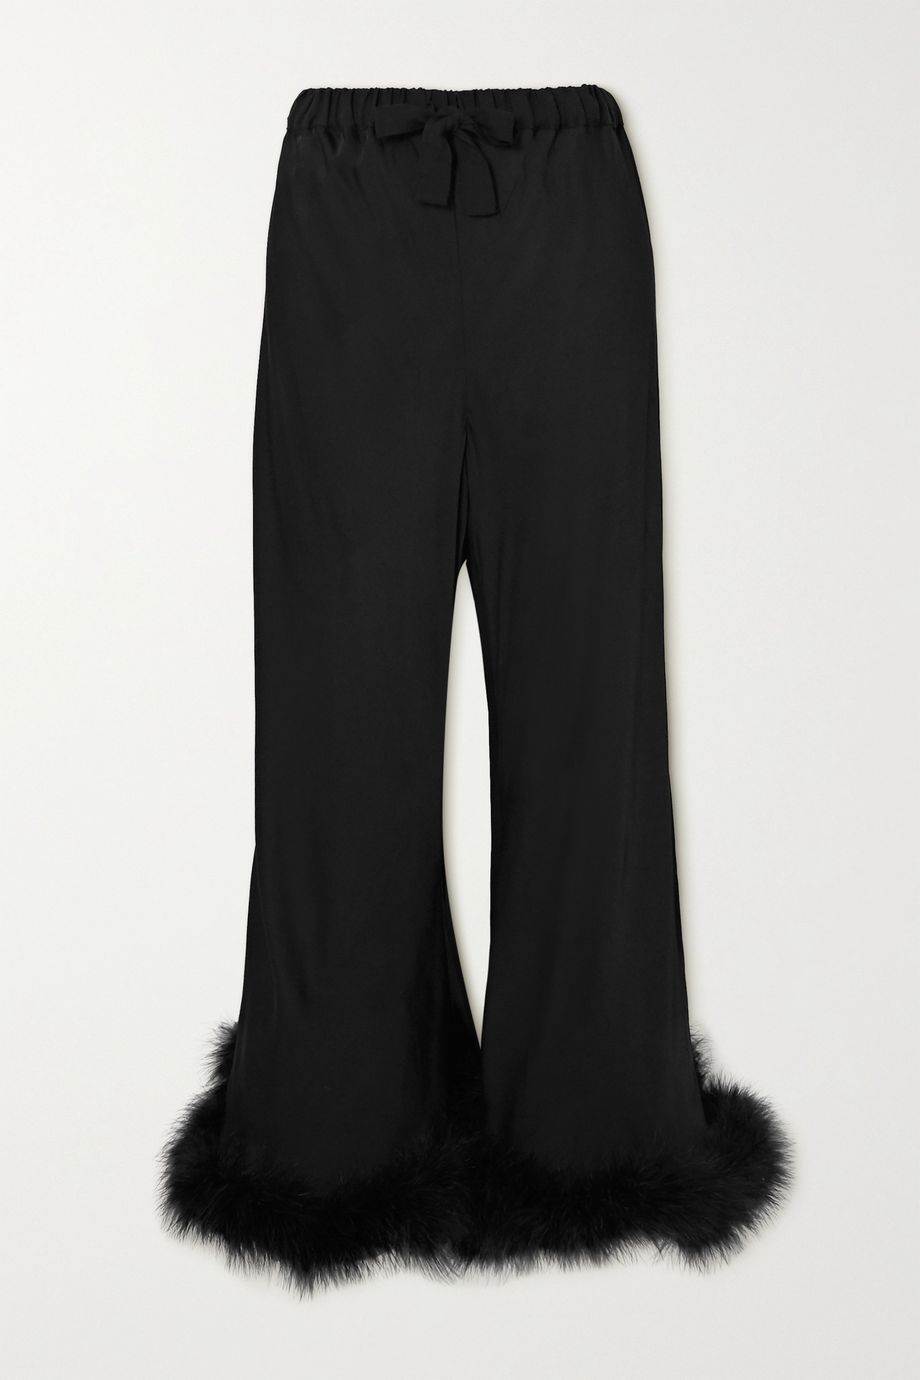 Sleeper Boudoir feather-trimmed satin pants